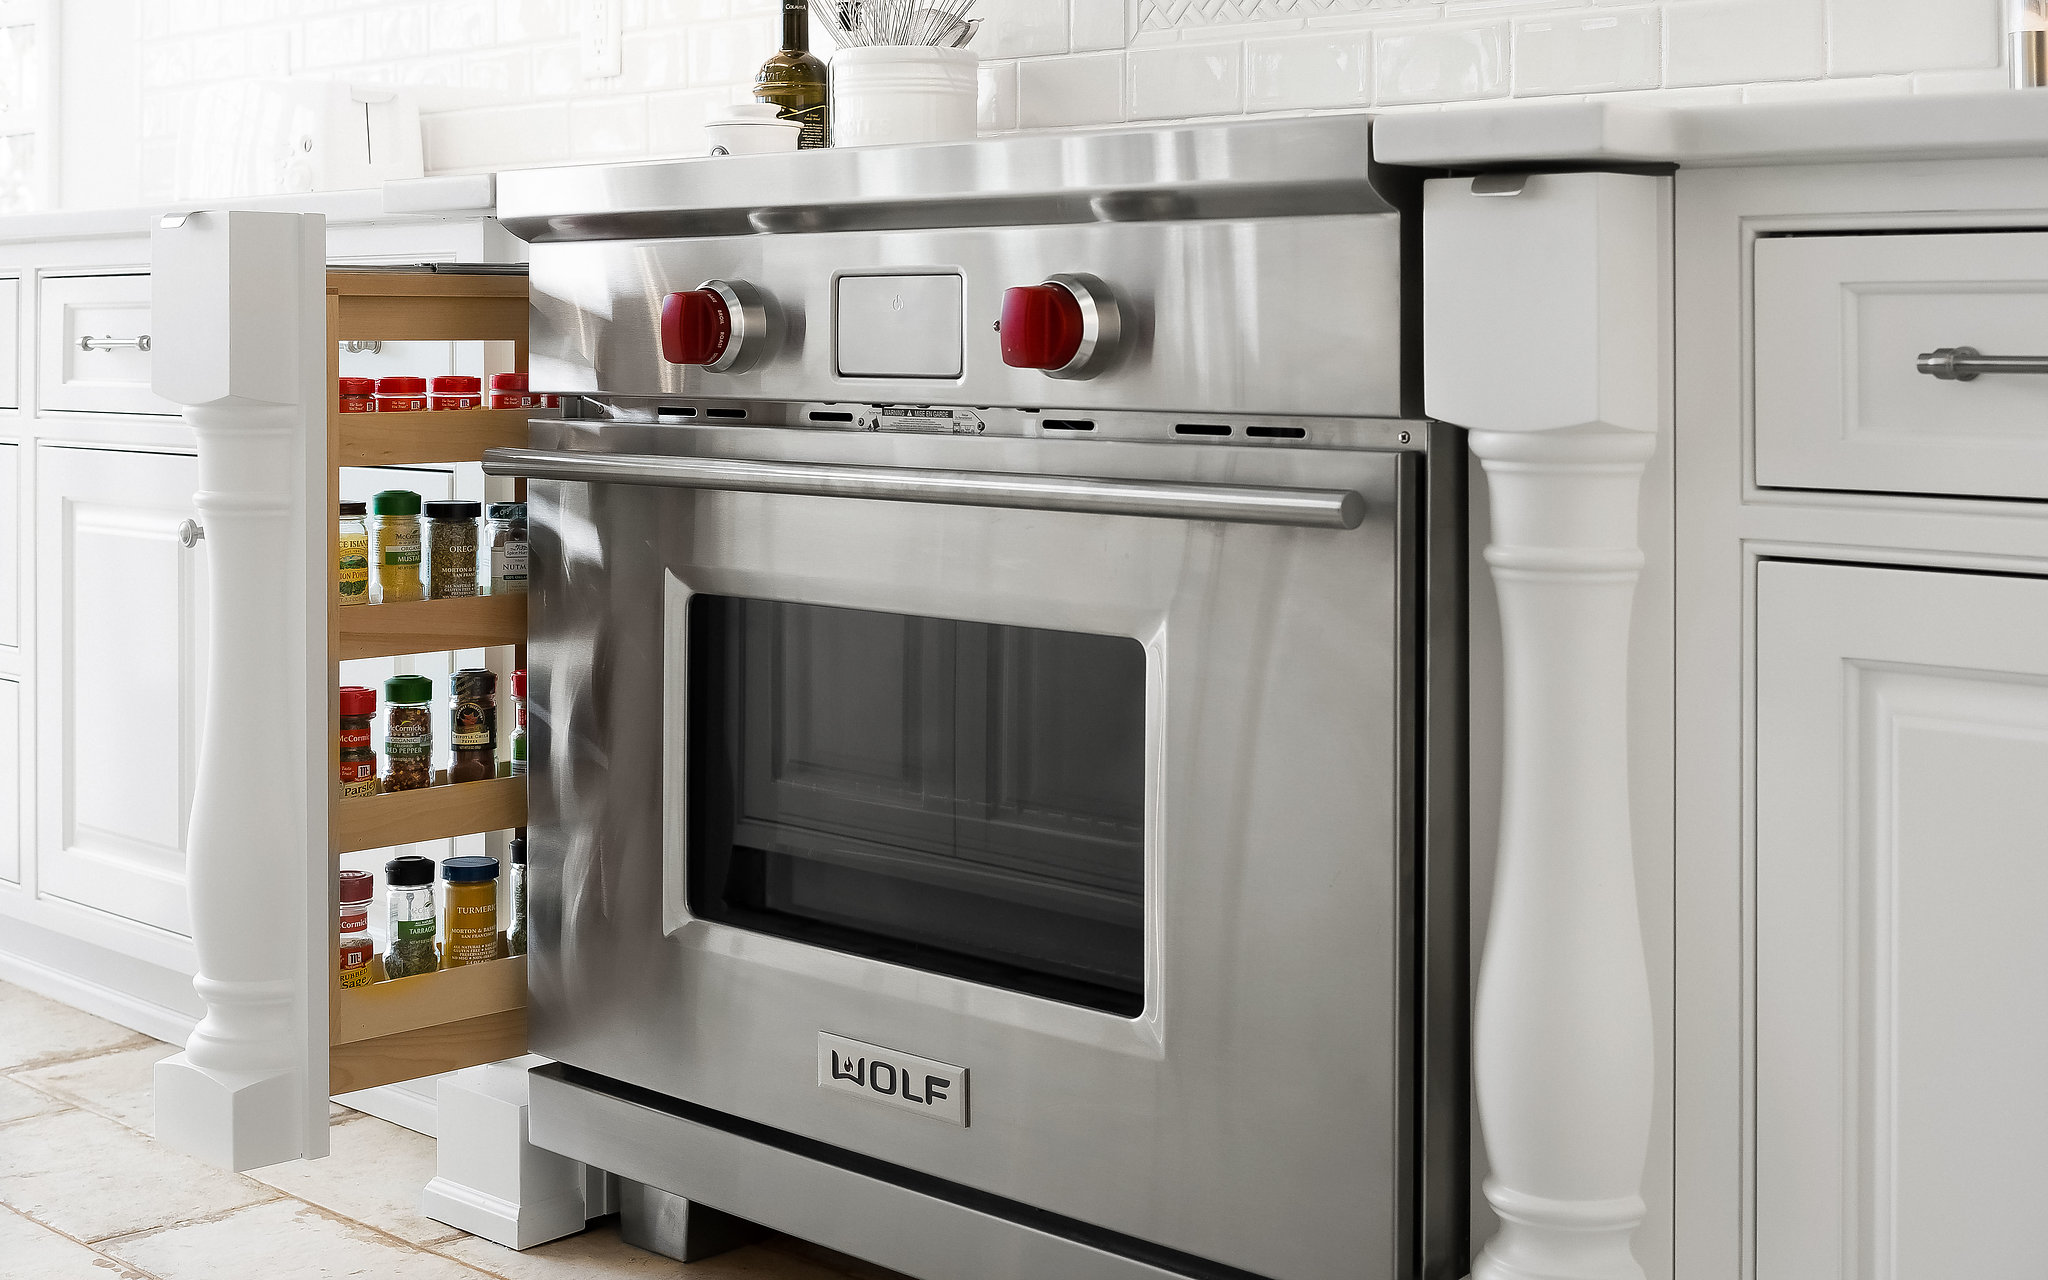 wolf induction range with pull out spice drawers